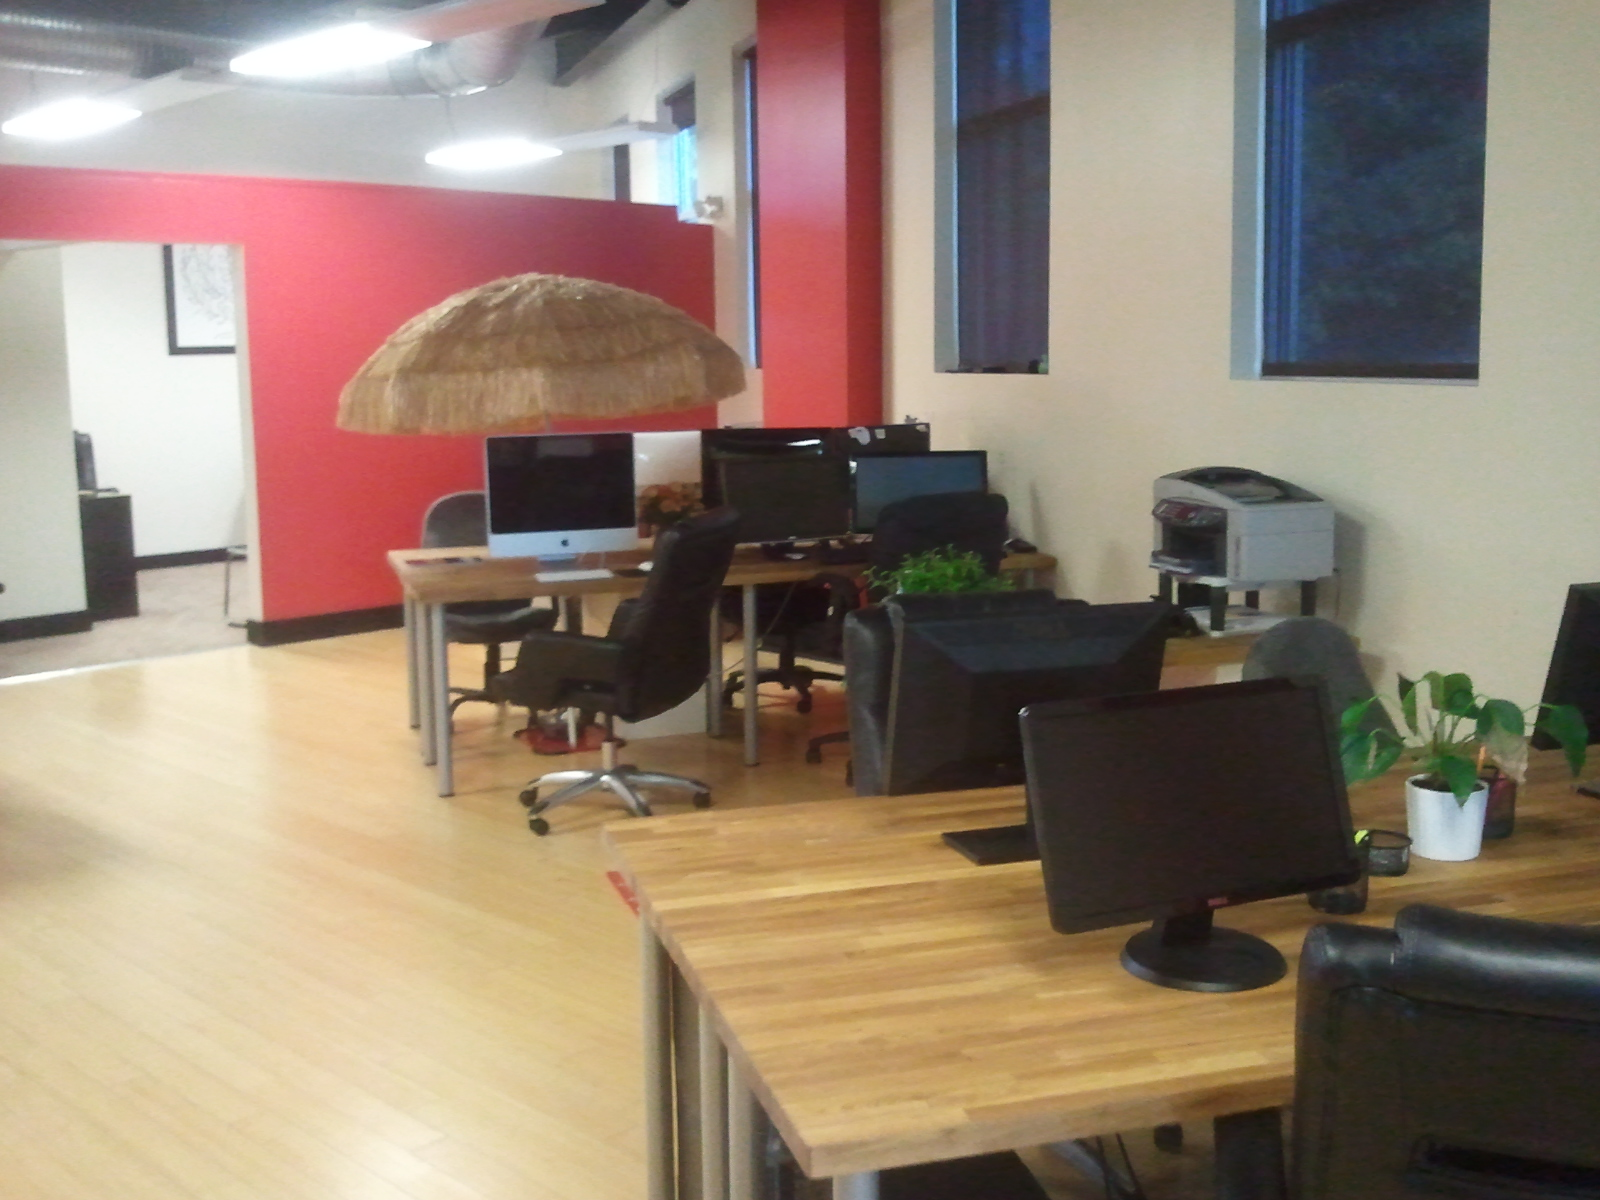 Tags: Alter Imaging, Charlotte, Charlotte Nc, Charlotte South End, Charlotte  Southend, Creative Office Space, Nc, Office Space, South End, ...